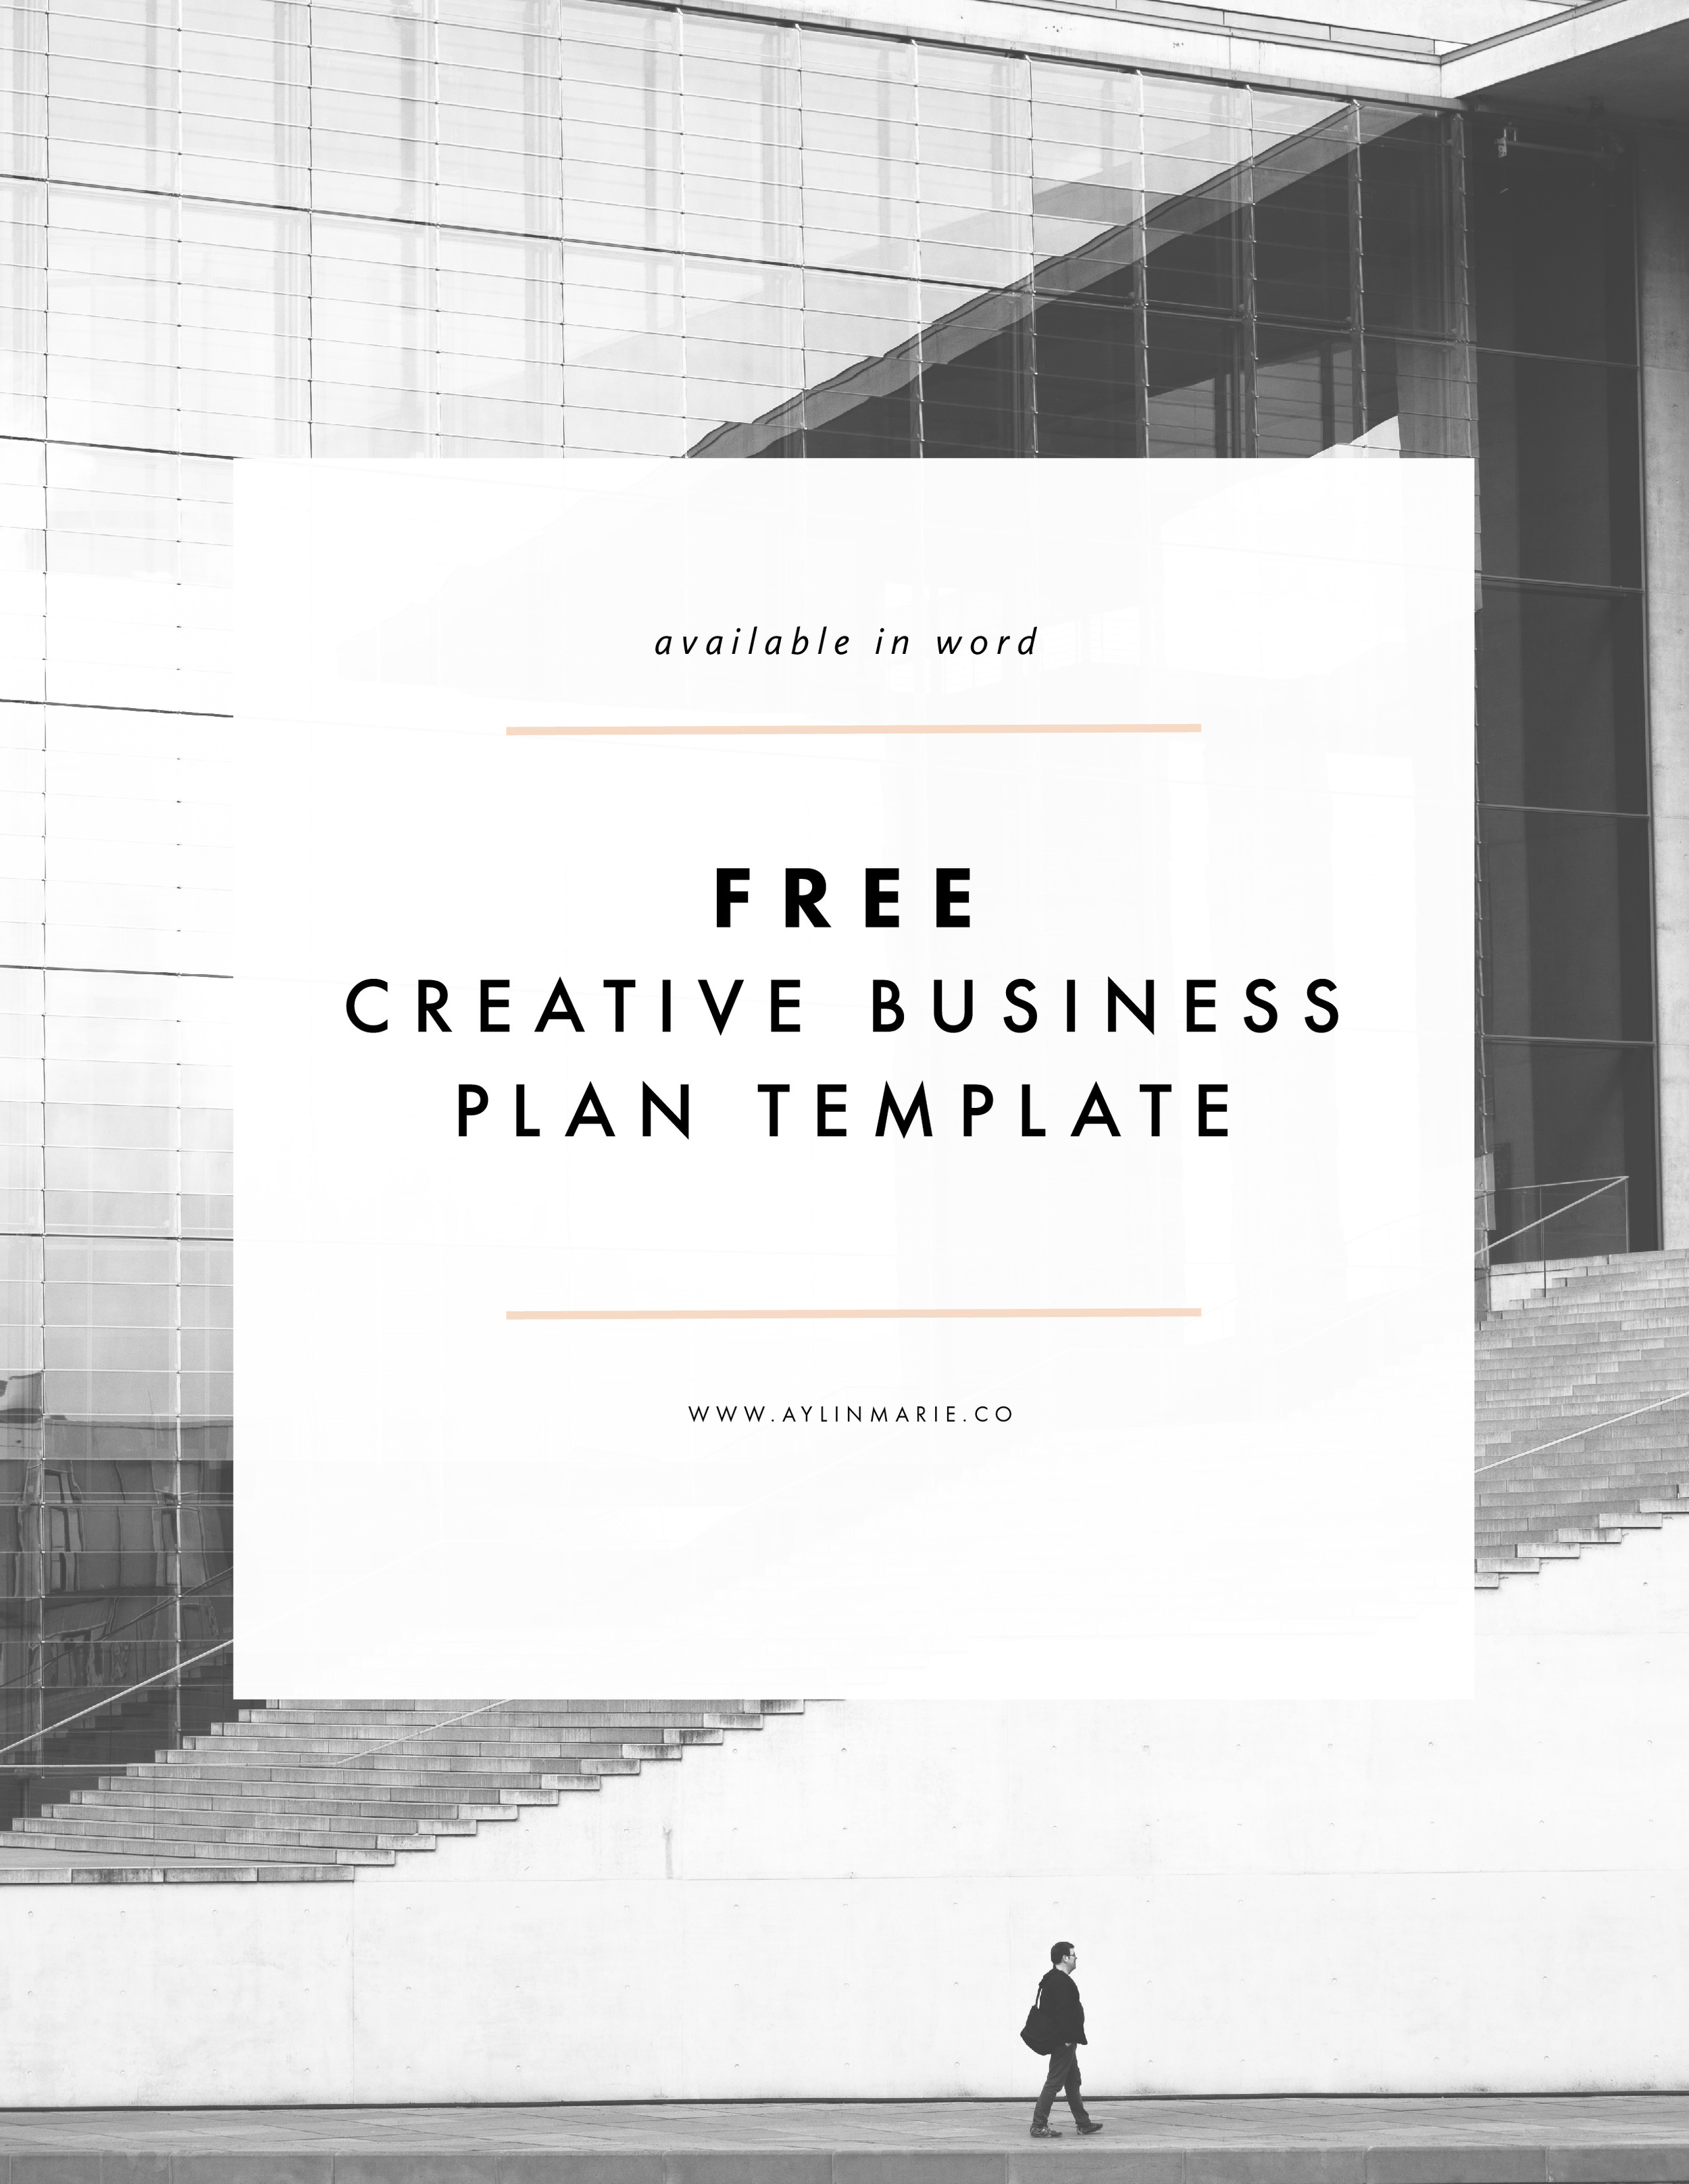 Freebie creative business plan template aylin marie freebie creative business plan template wajeb Image collections